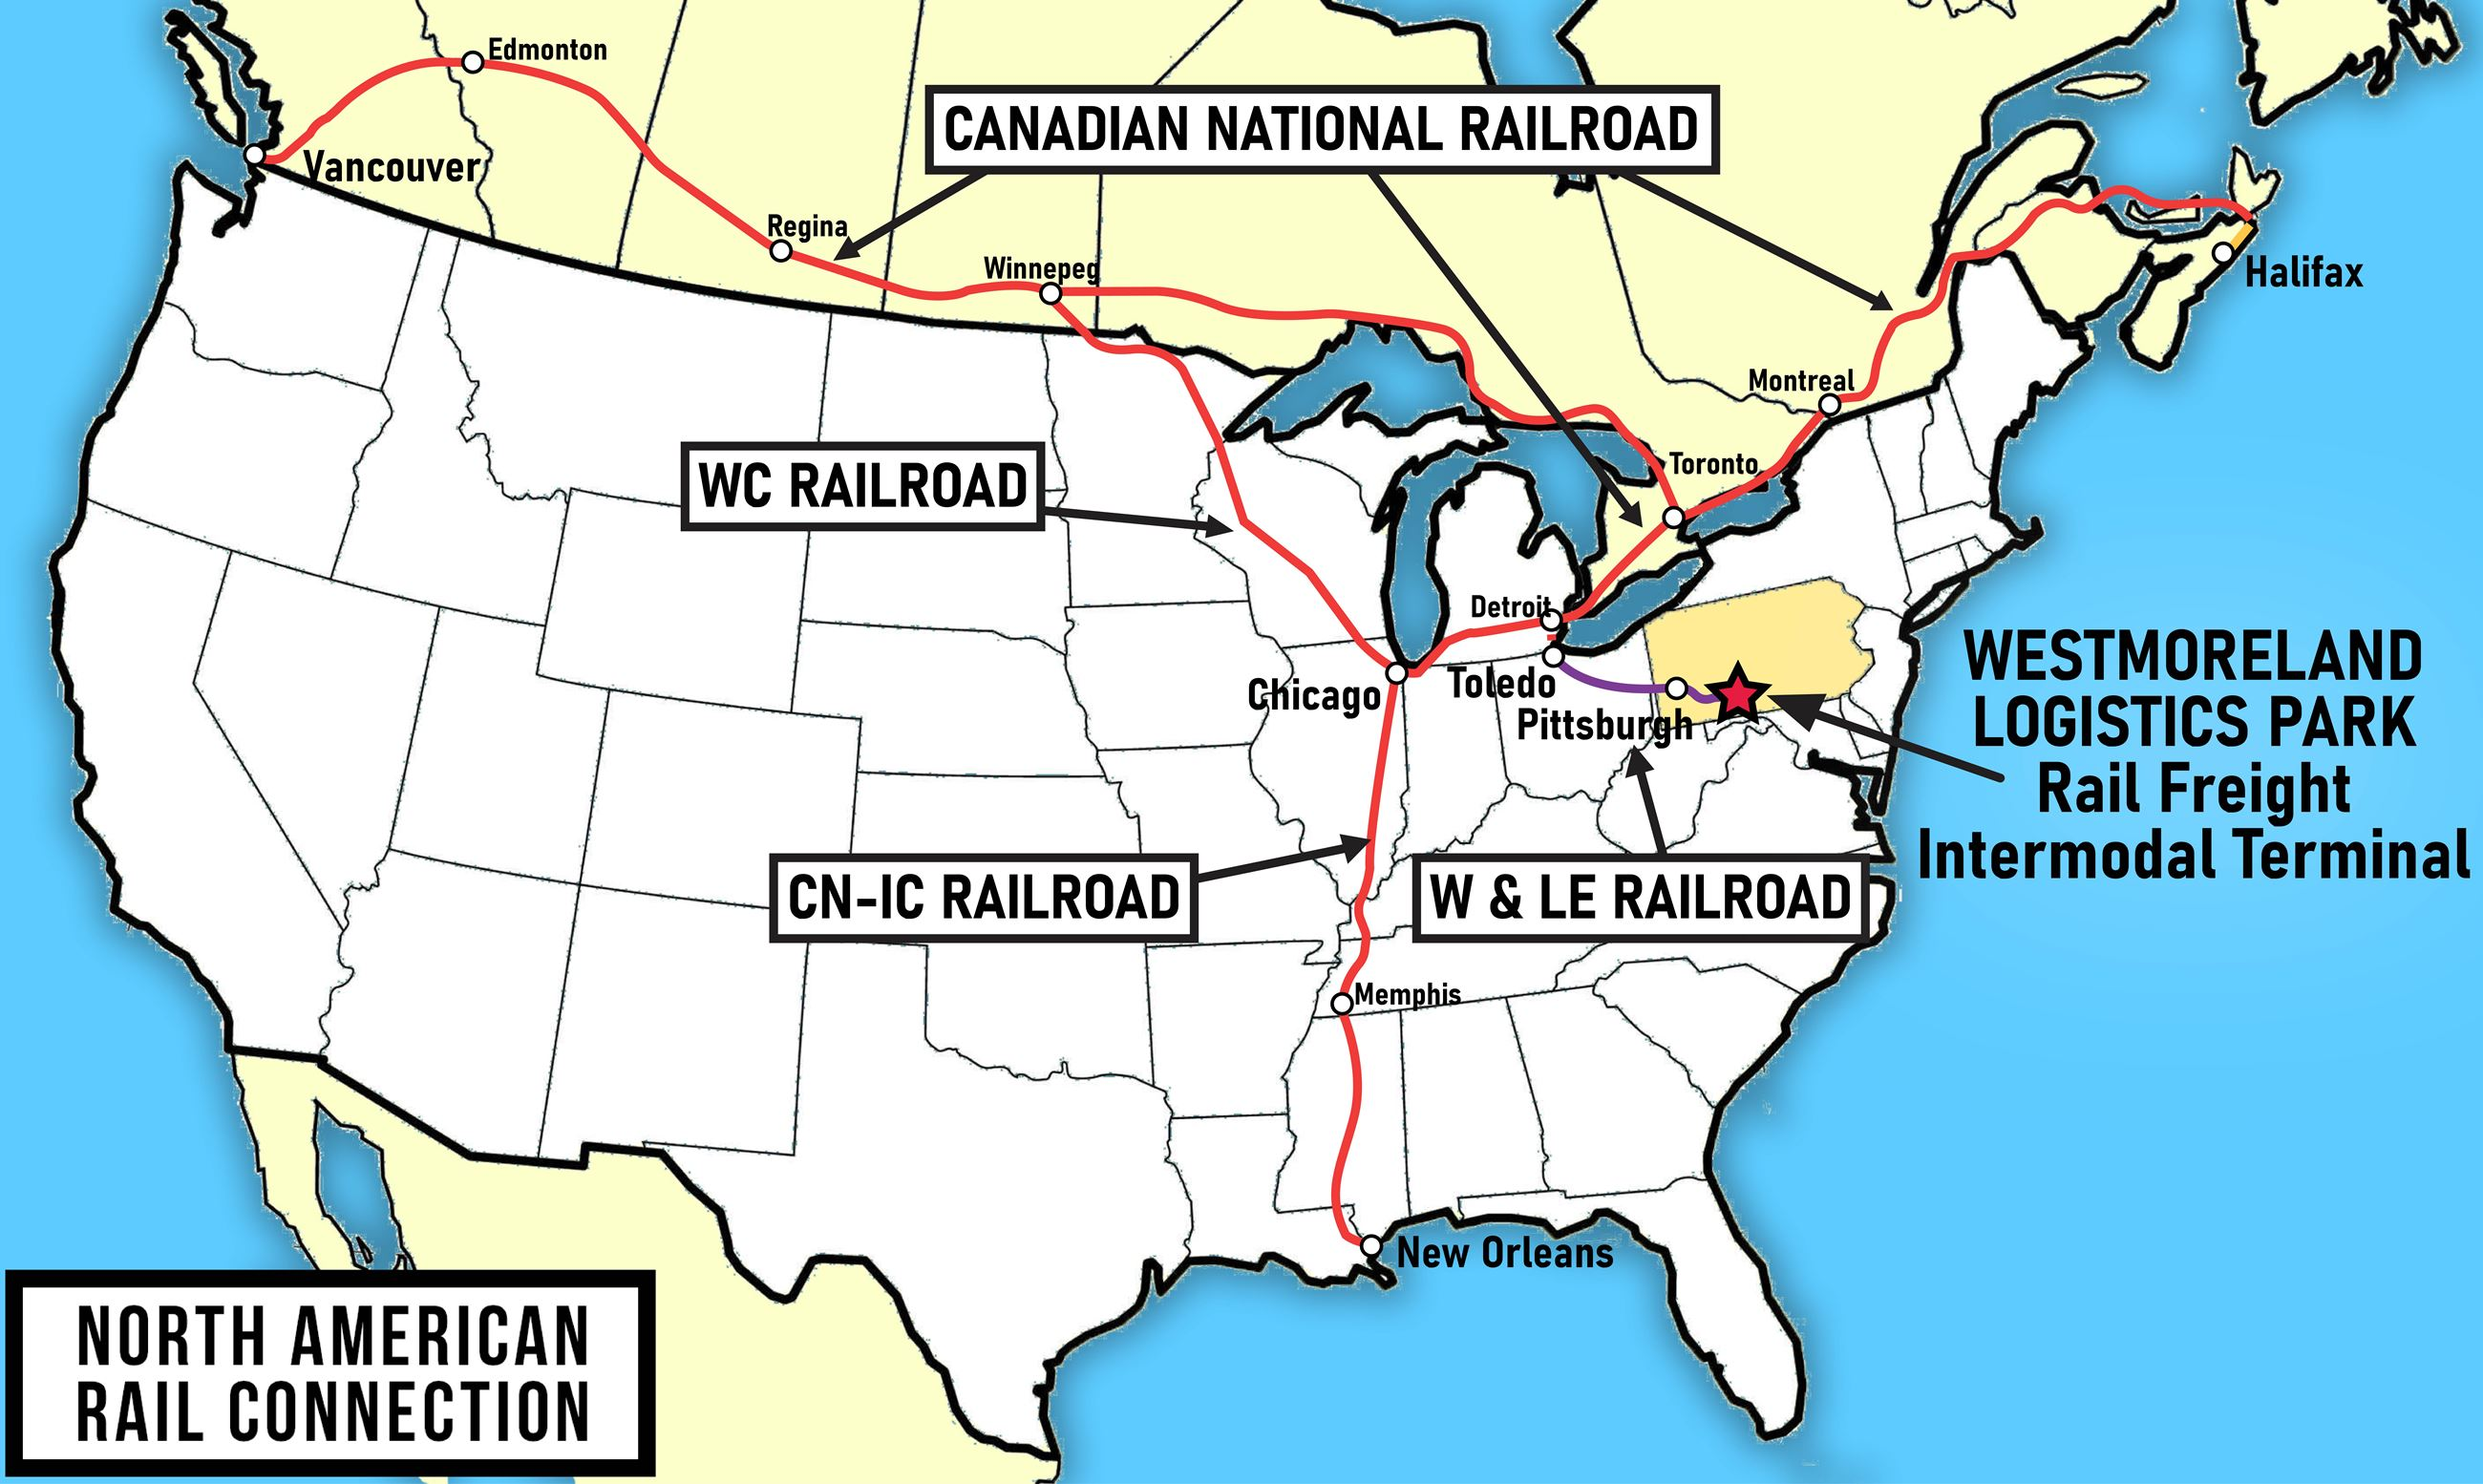 USA Railway Map Map Of American High Speed Rail Network Business - Railway map of us